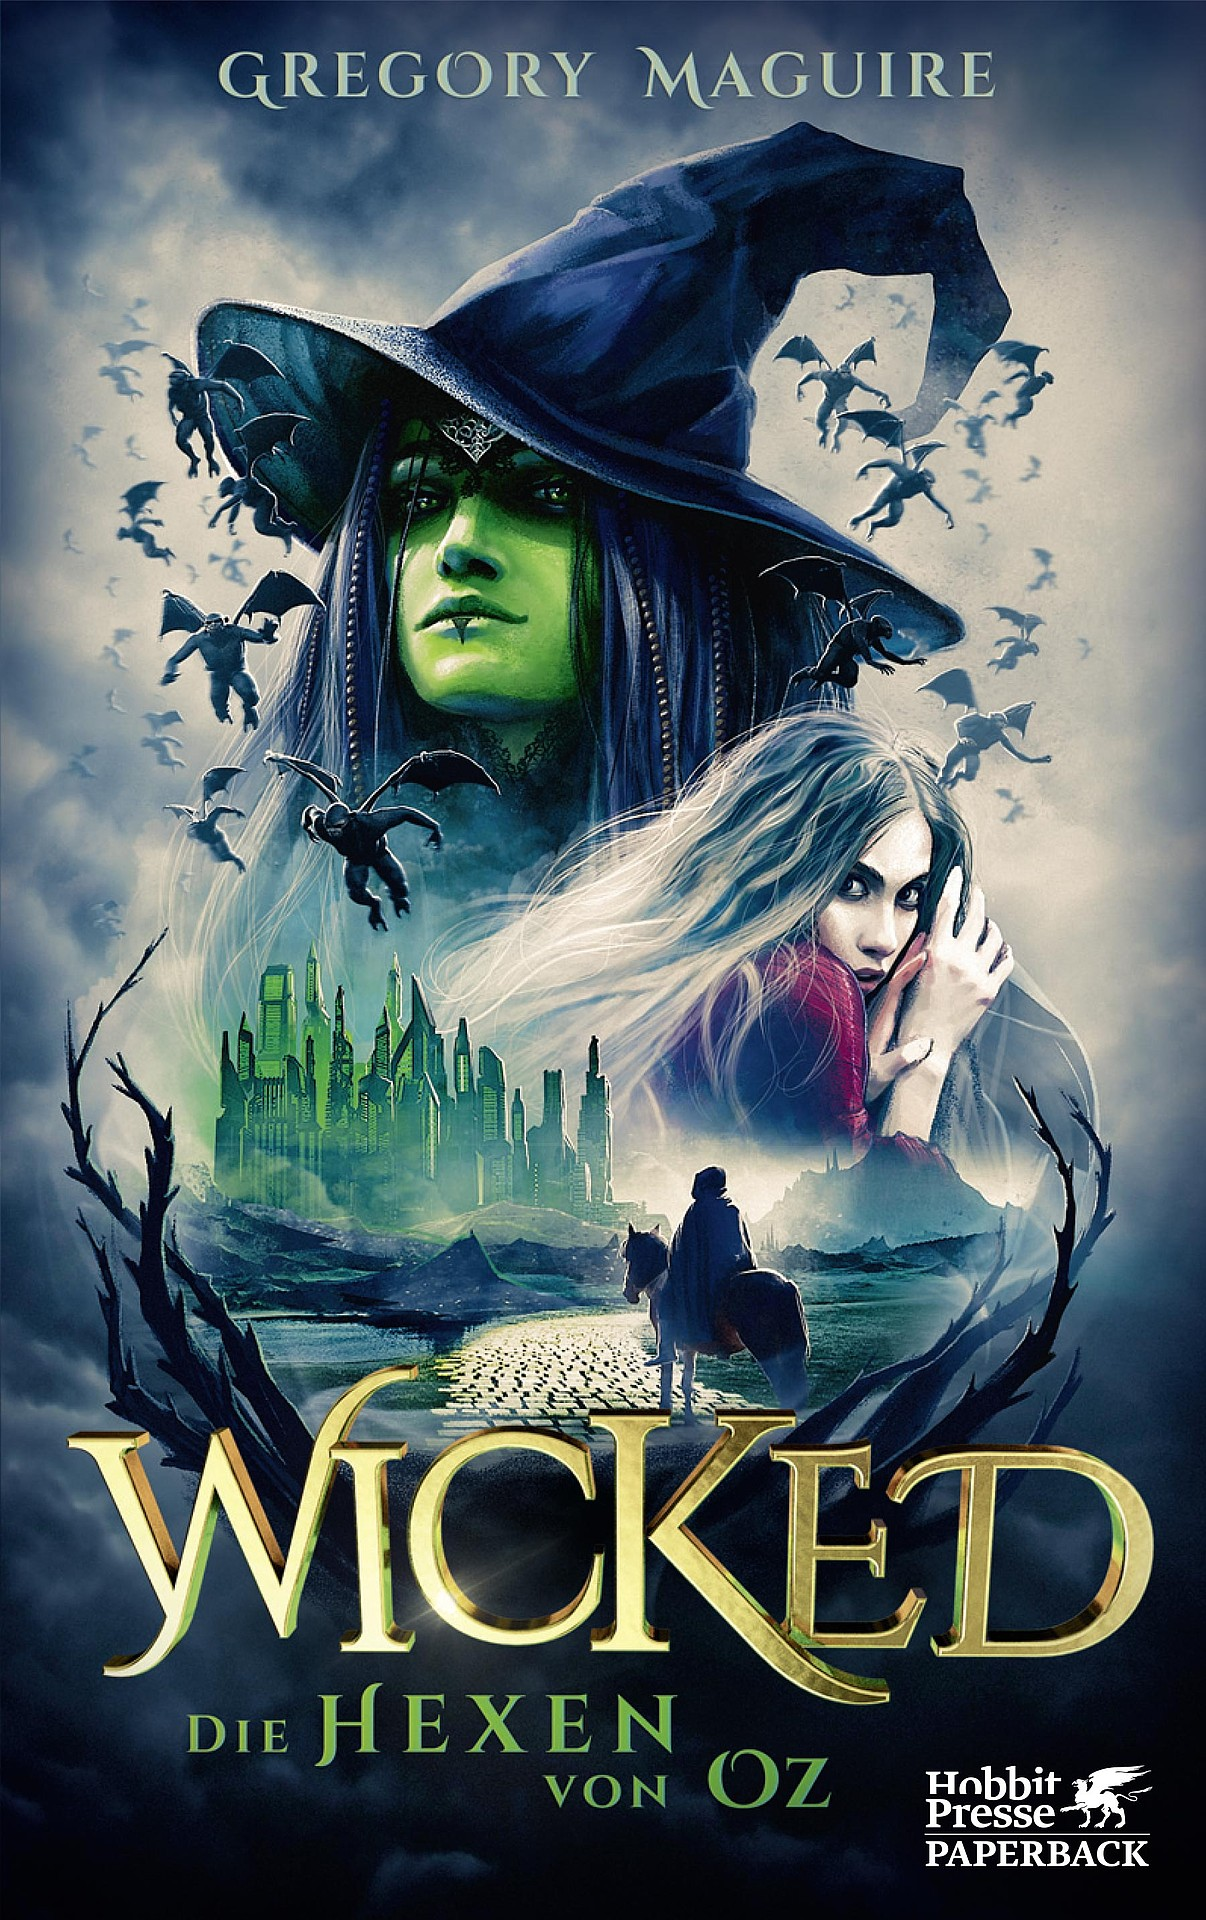 Wicked - Die Hexen von Oz von Gregory Maguire bei Amazon bestellen